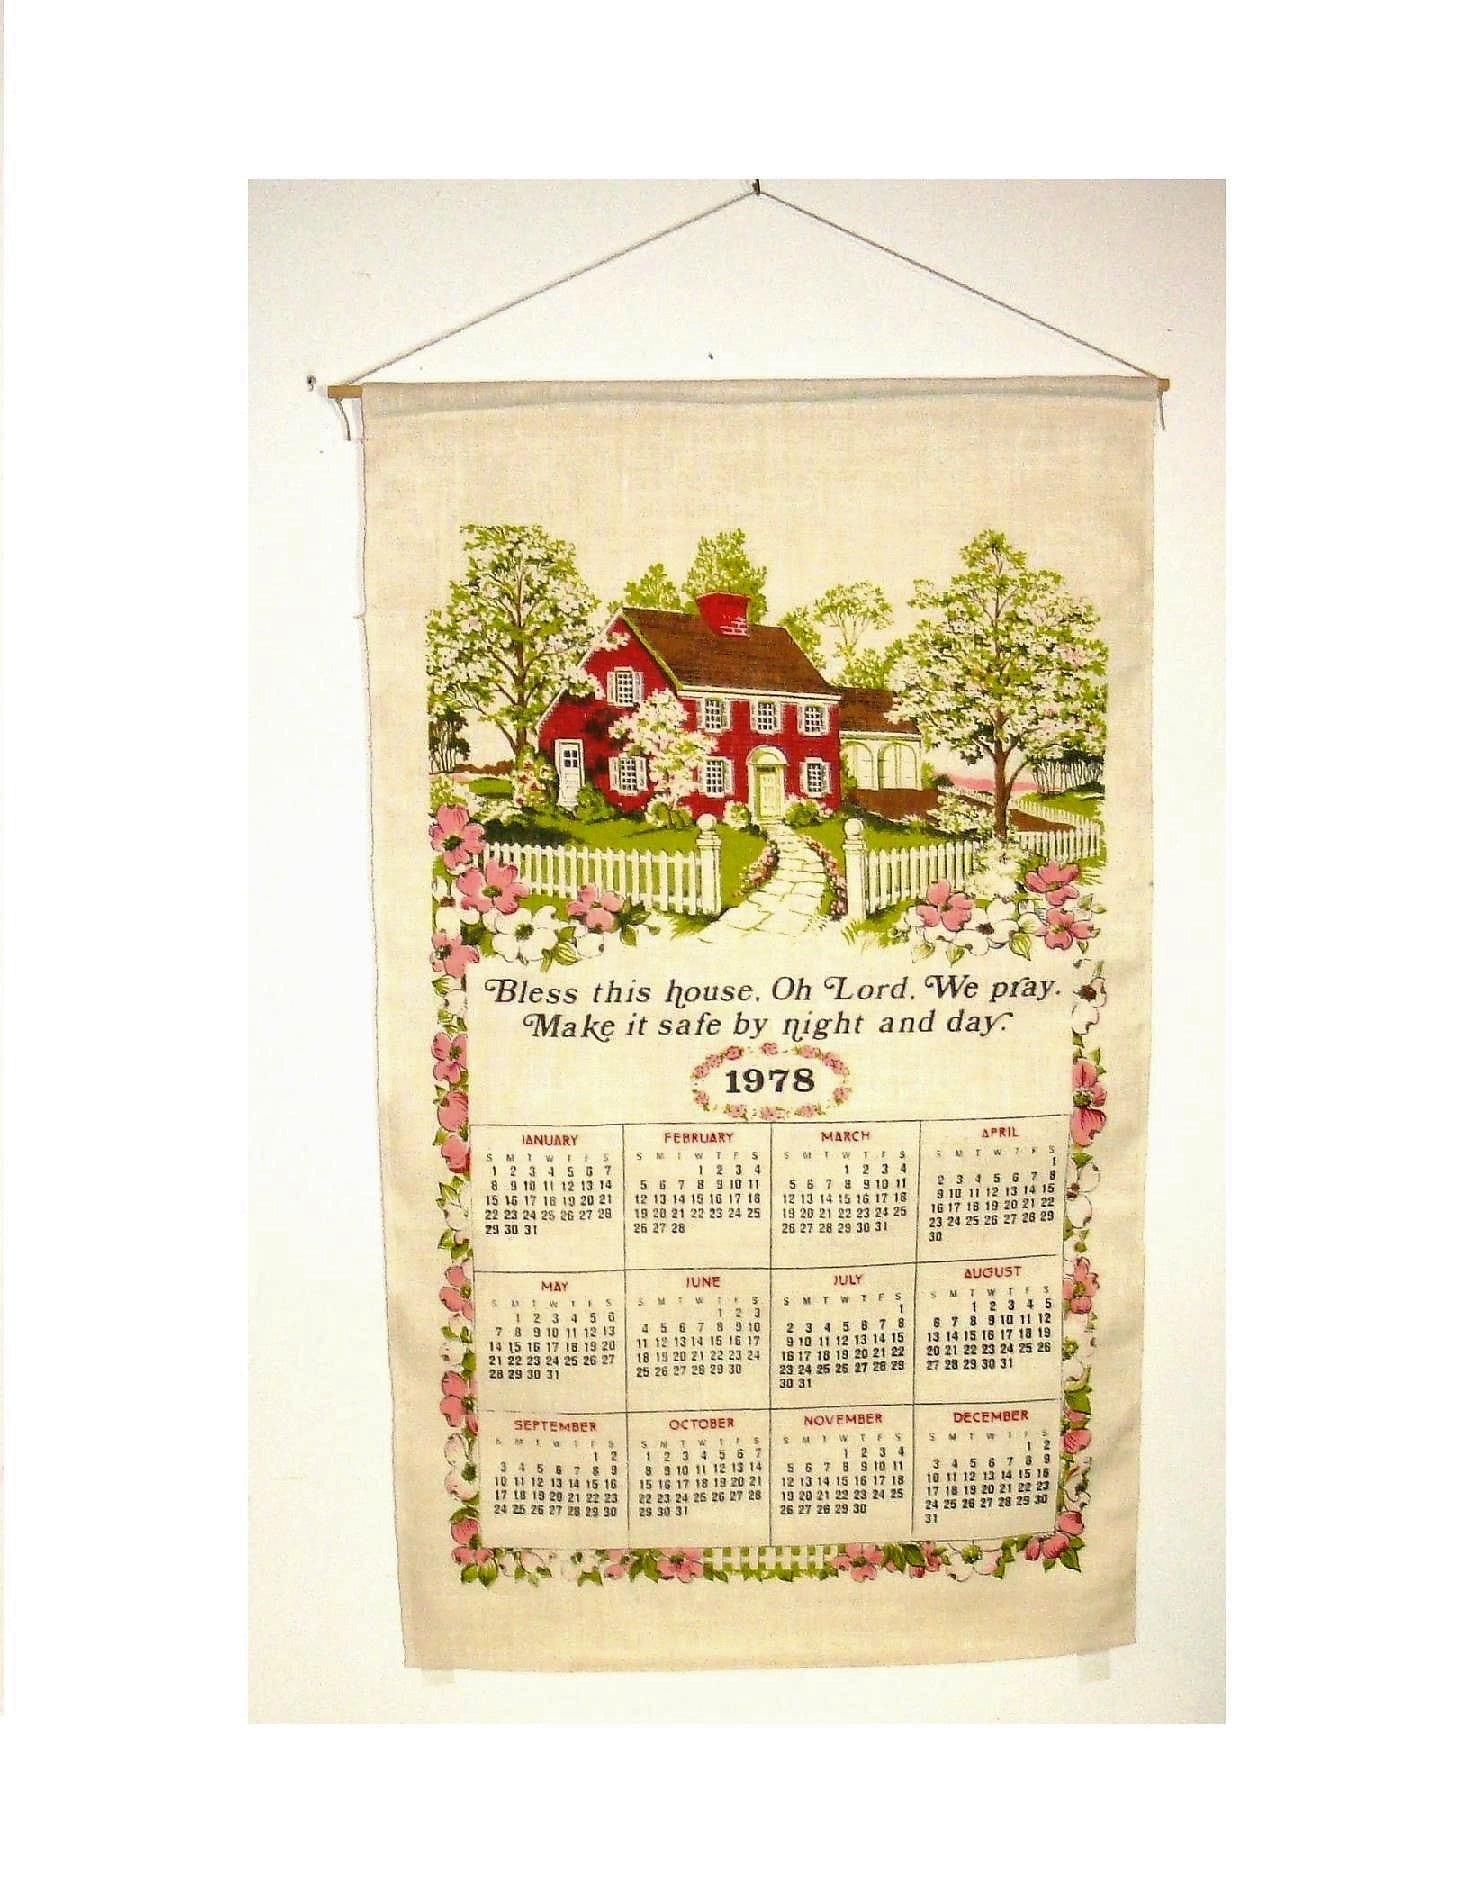 1978 Calendar September.1978 Linen Wall Calendar Bless This House 16 By 25 New Old Stock Still In The Packaging Old Country Farm House With White Picket Fence